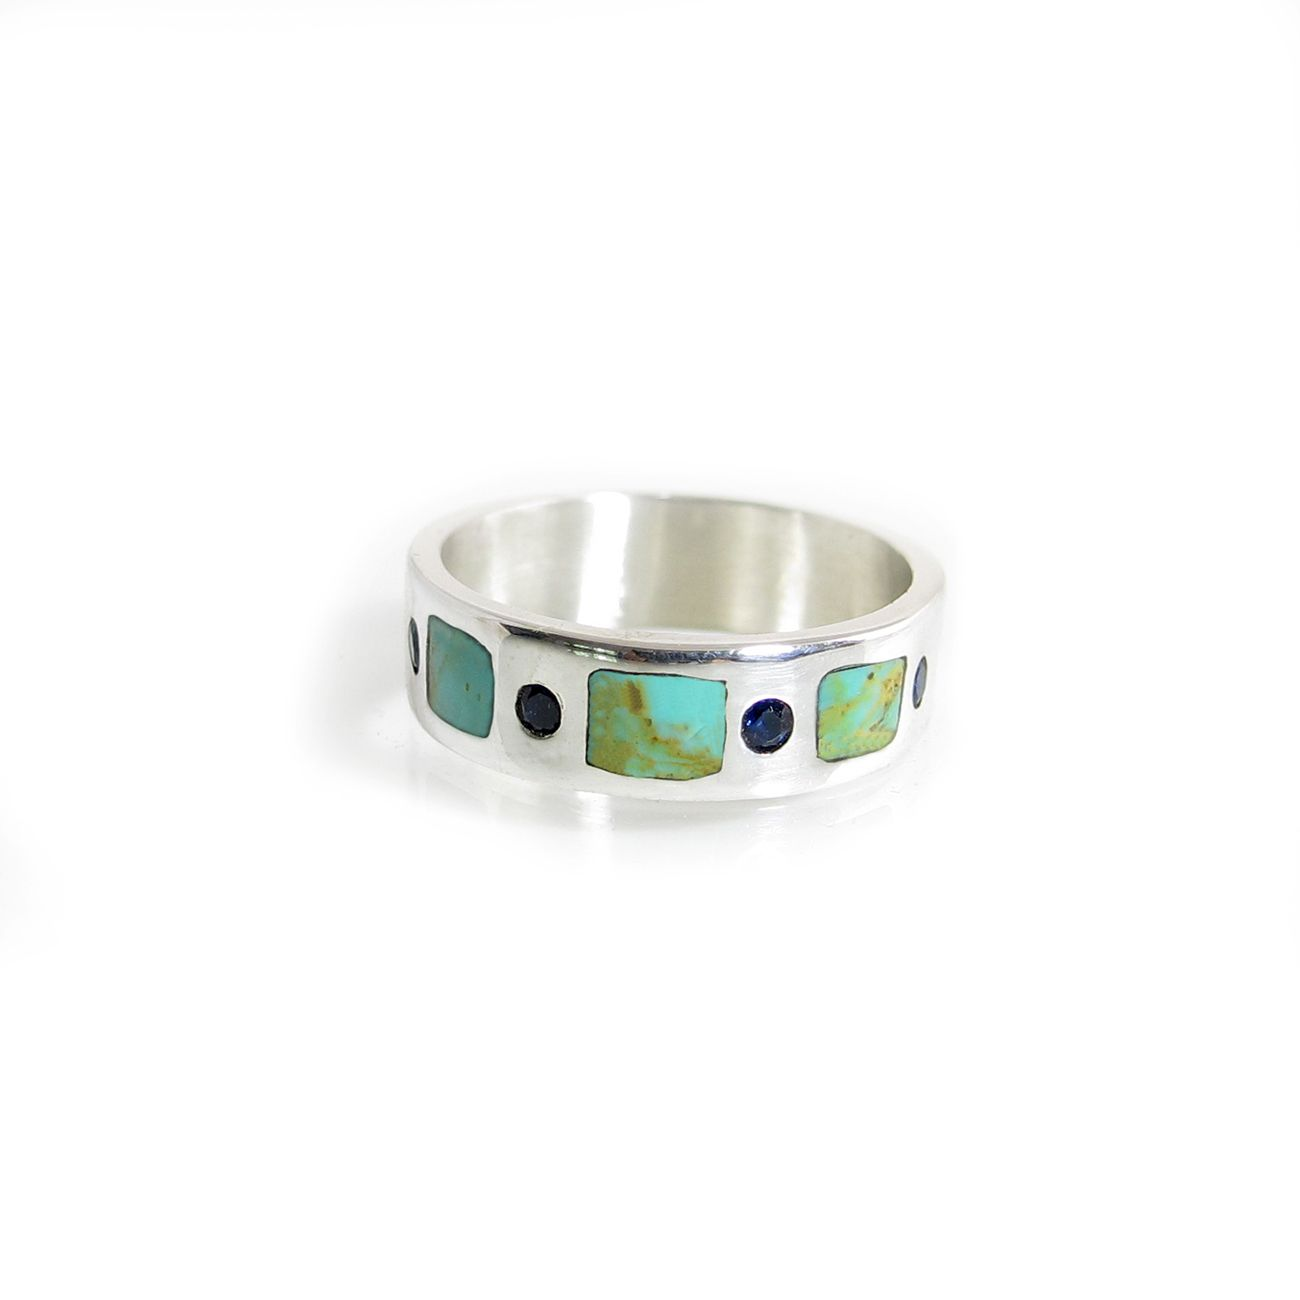 Buy Handmade Turquoise And Sapphire Inlay Wedding Ring For Men Or ...